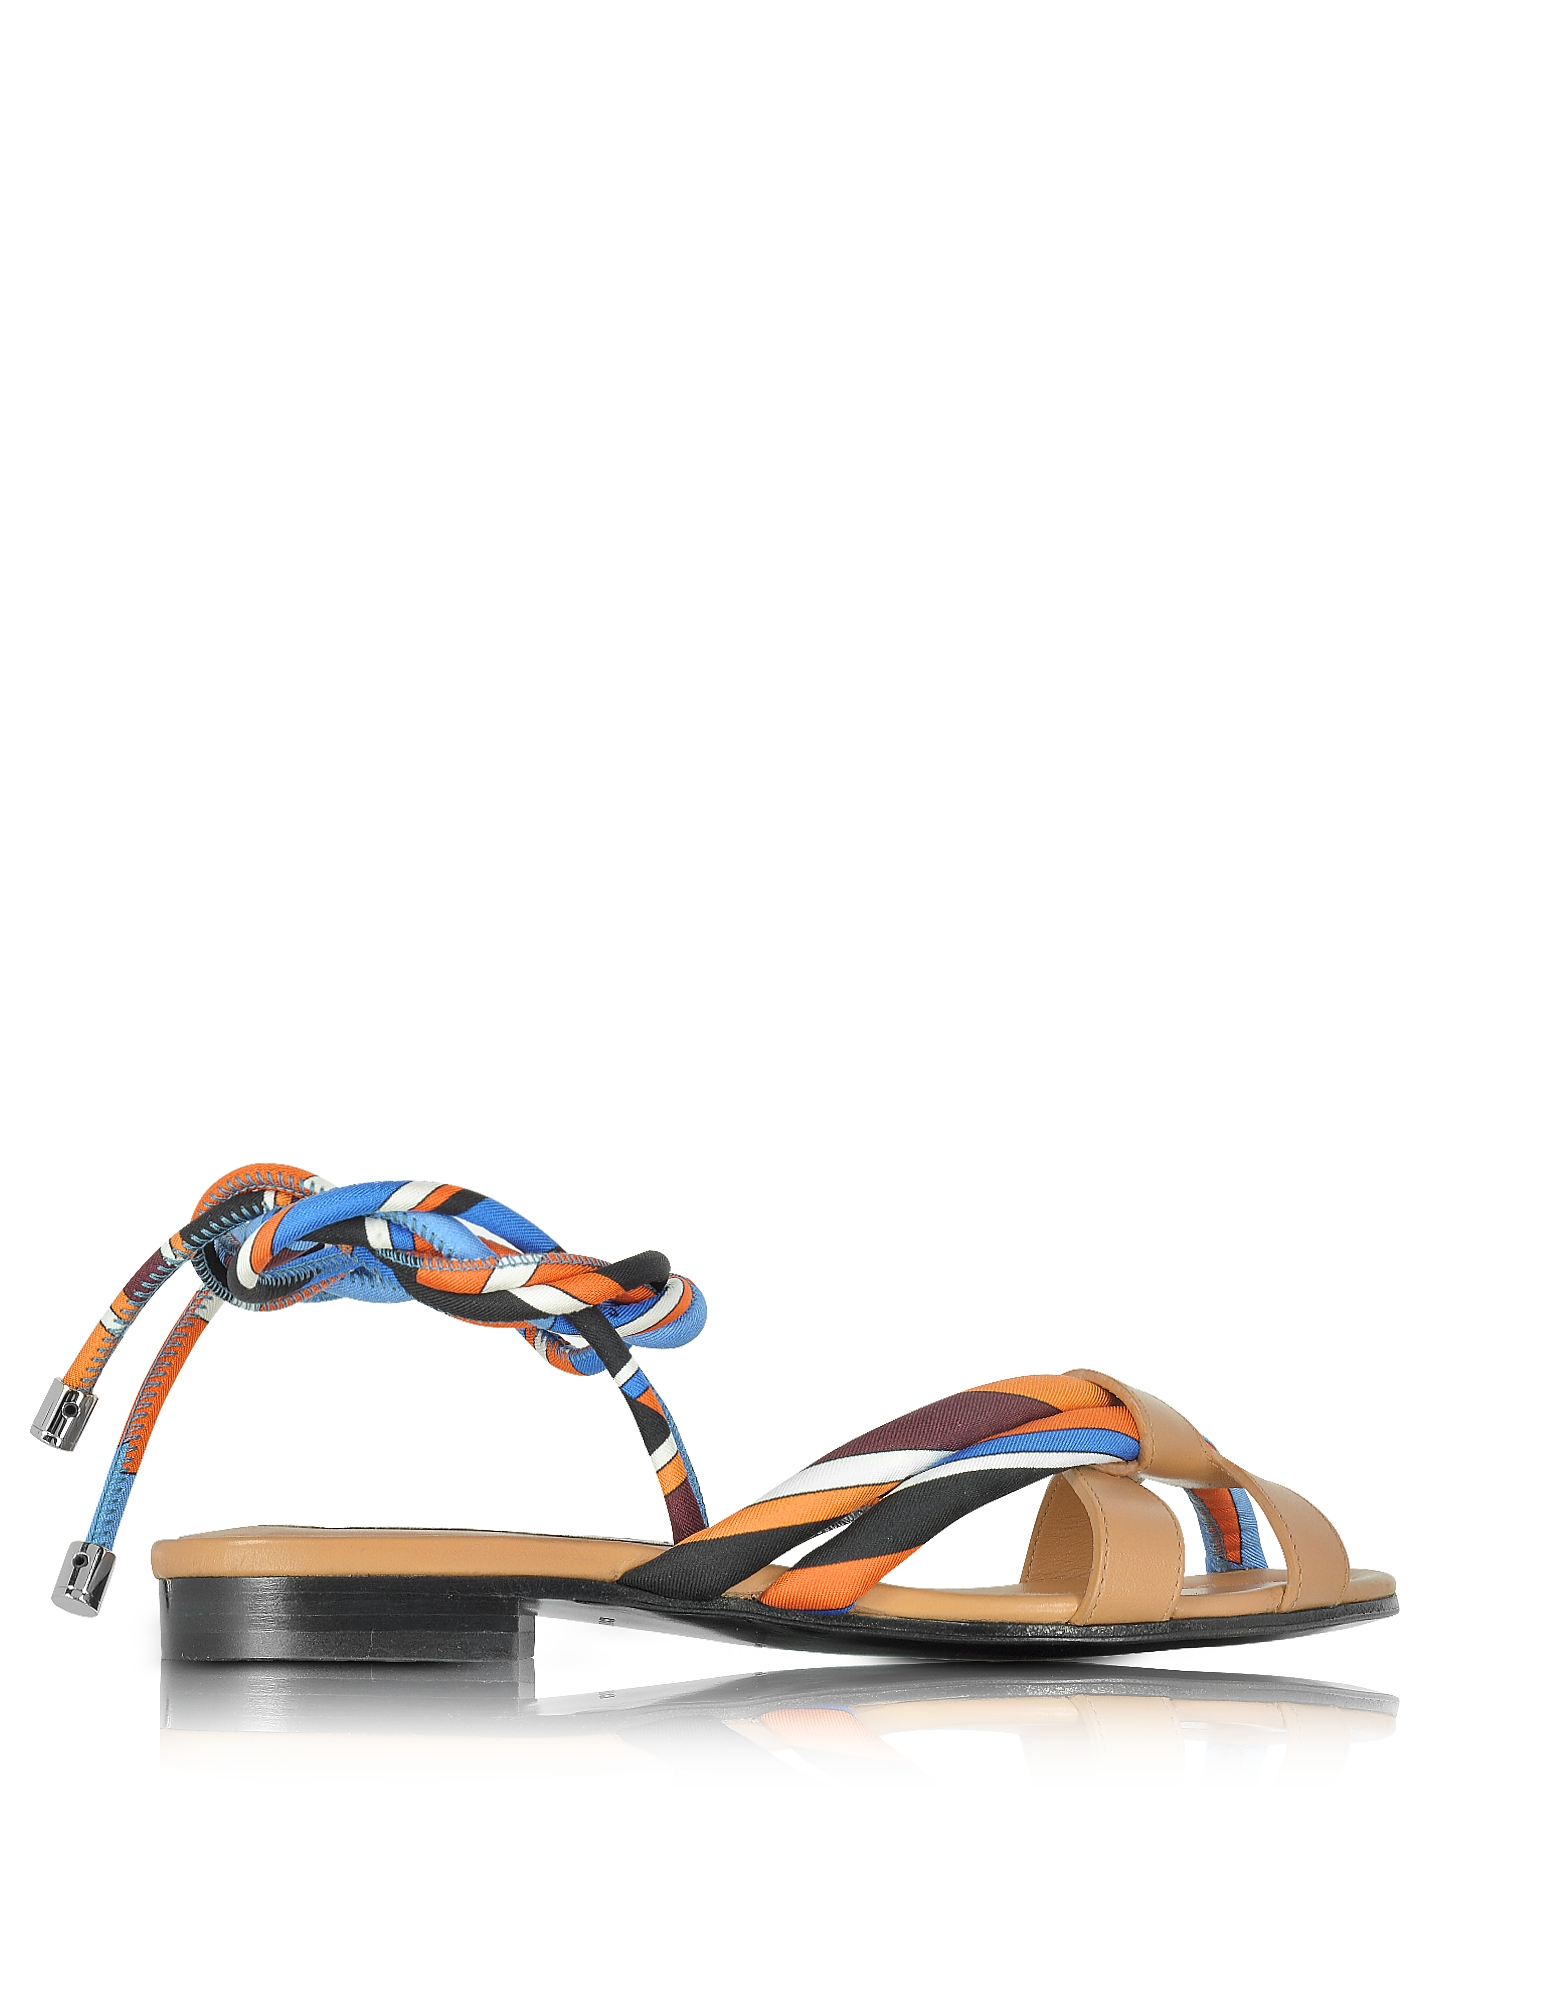 Emilio Pucci Shoes, Navy, Sky Blue and Mandarin Silk and Leather Flat Sandal